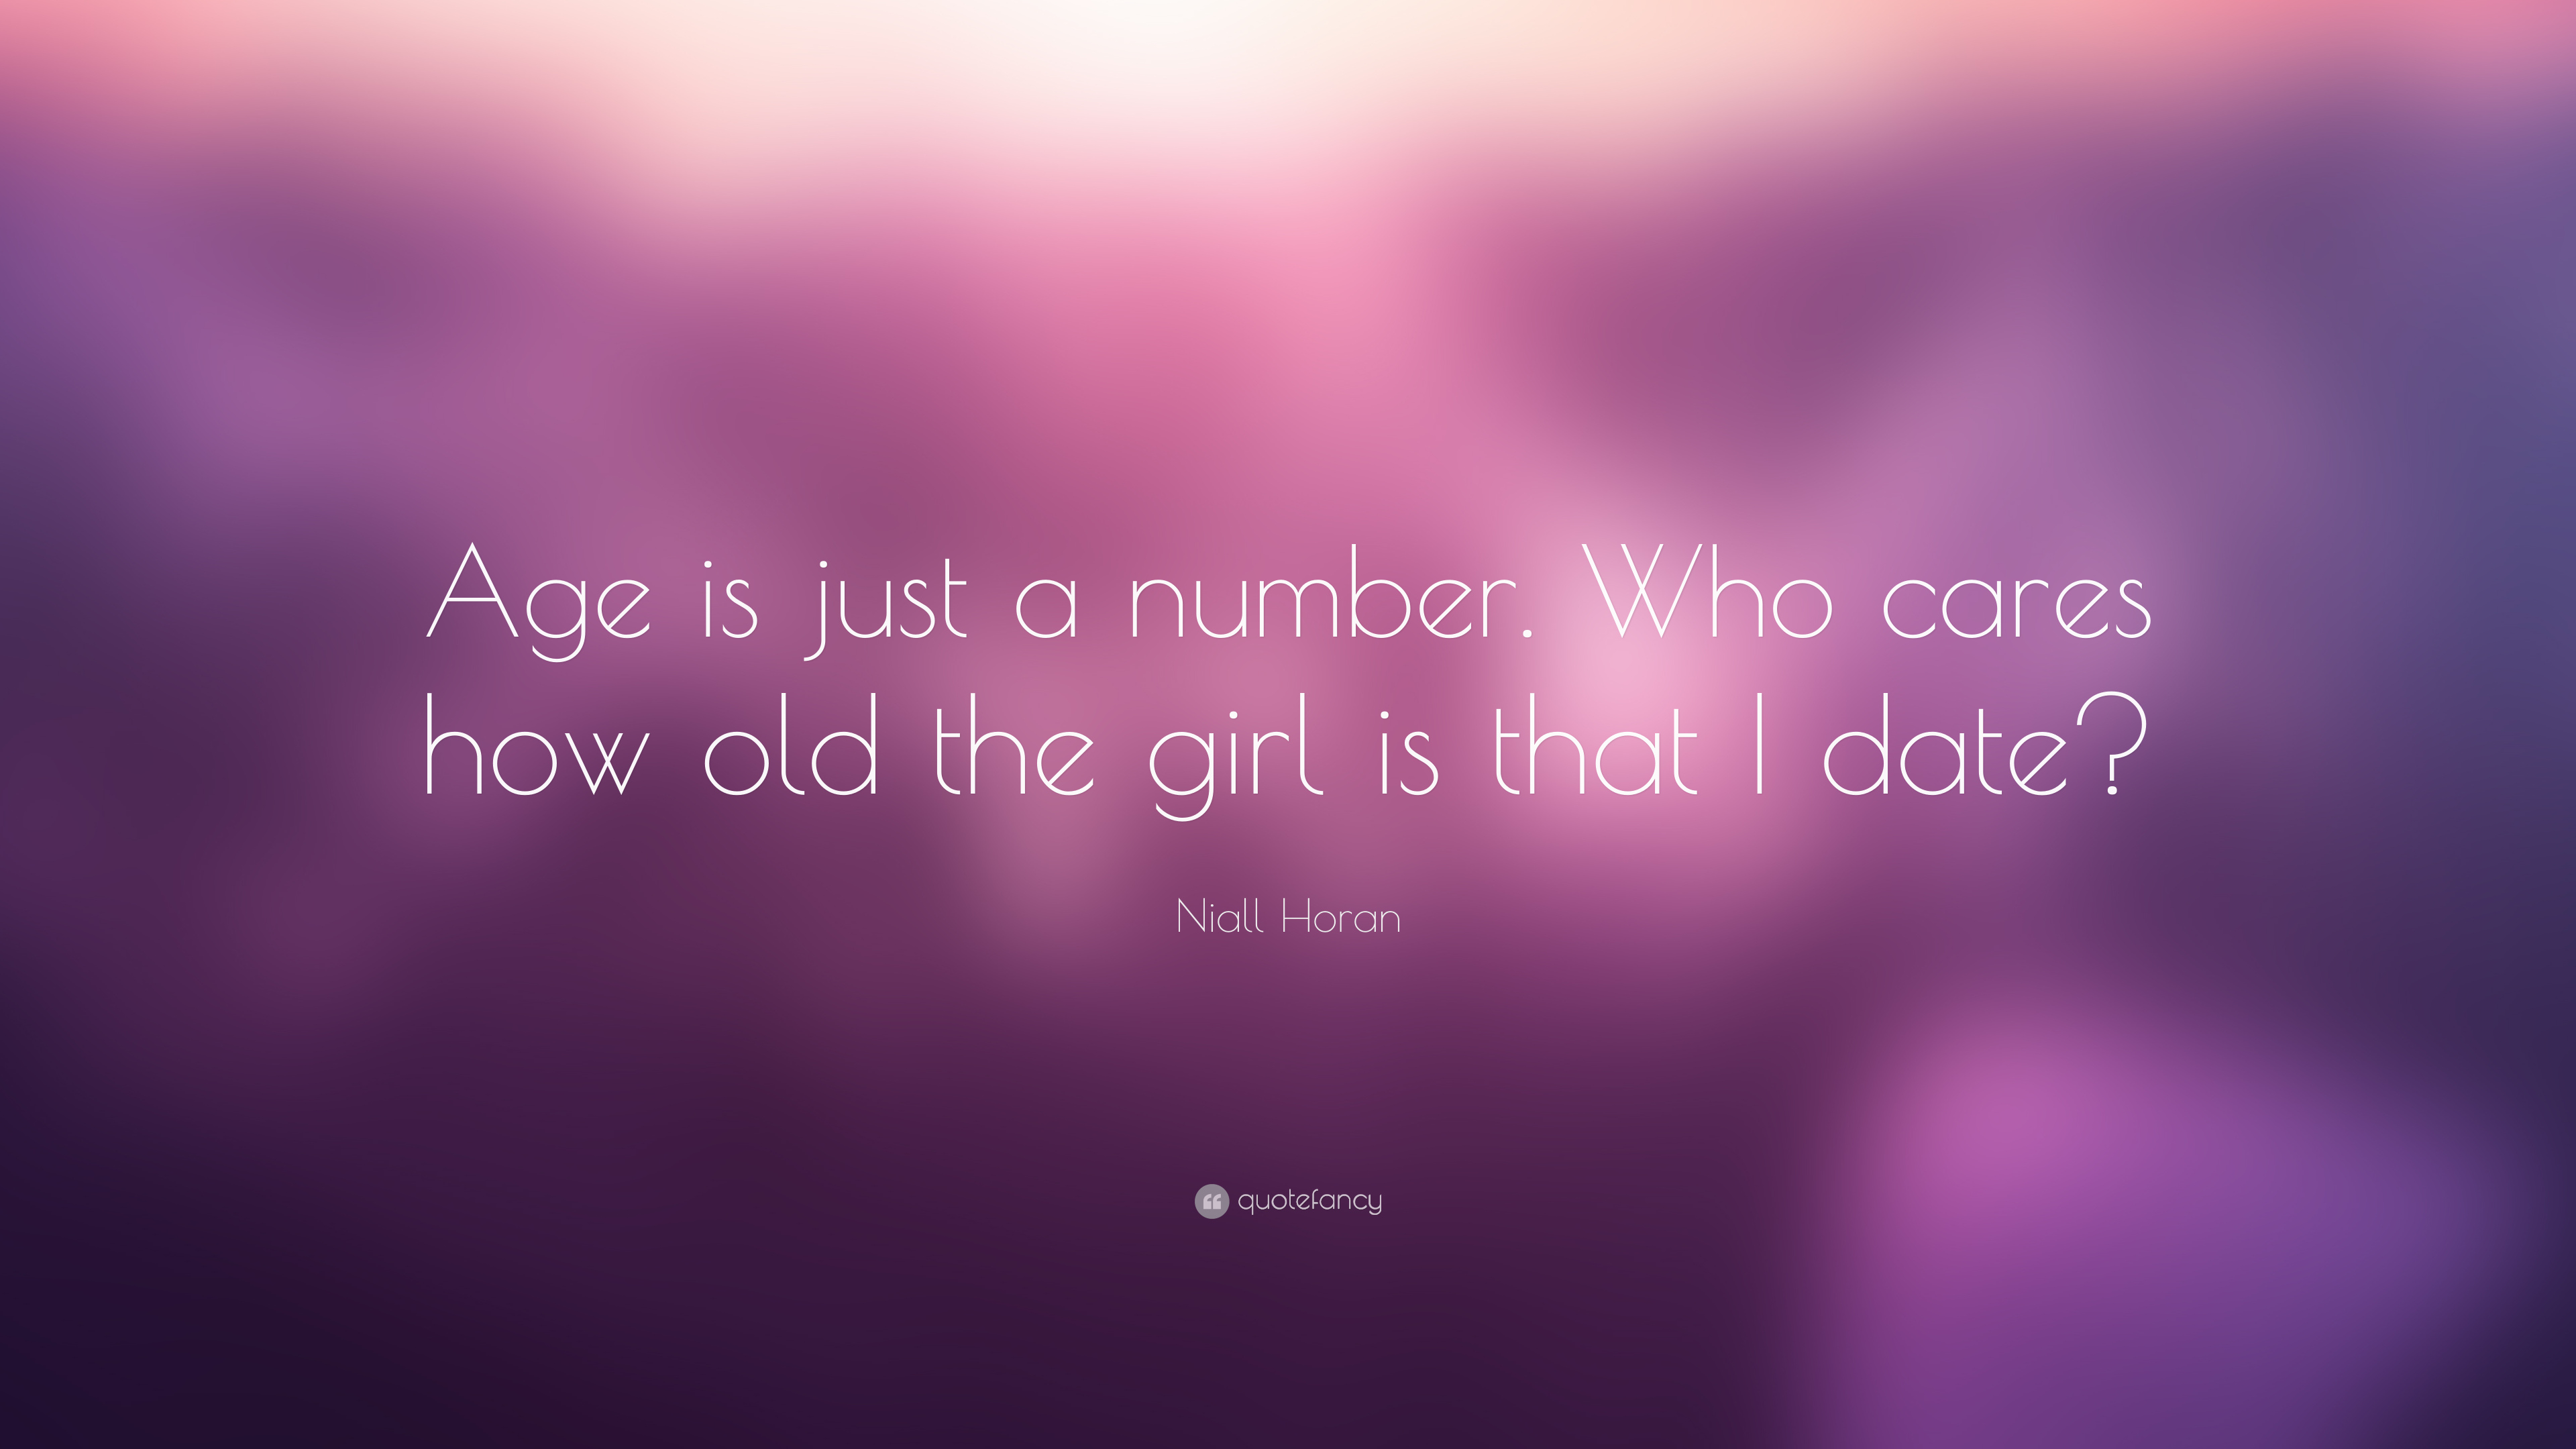 Dating Age is Not Just a Number